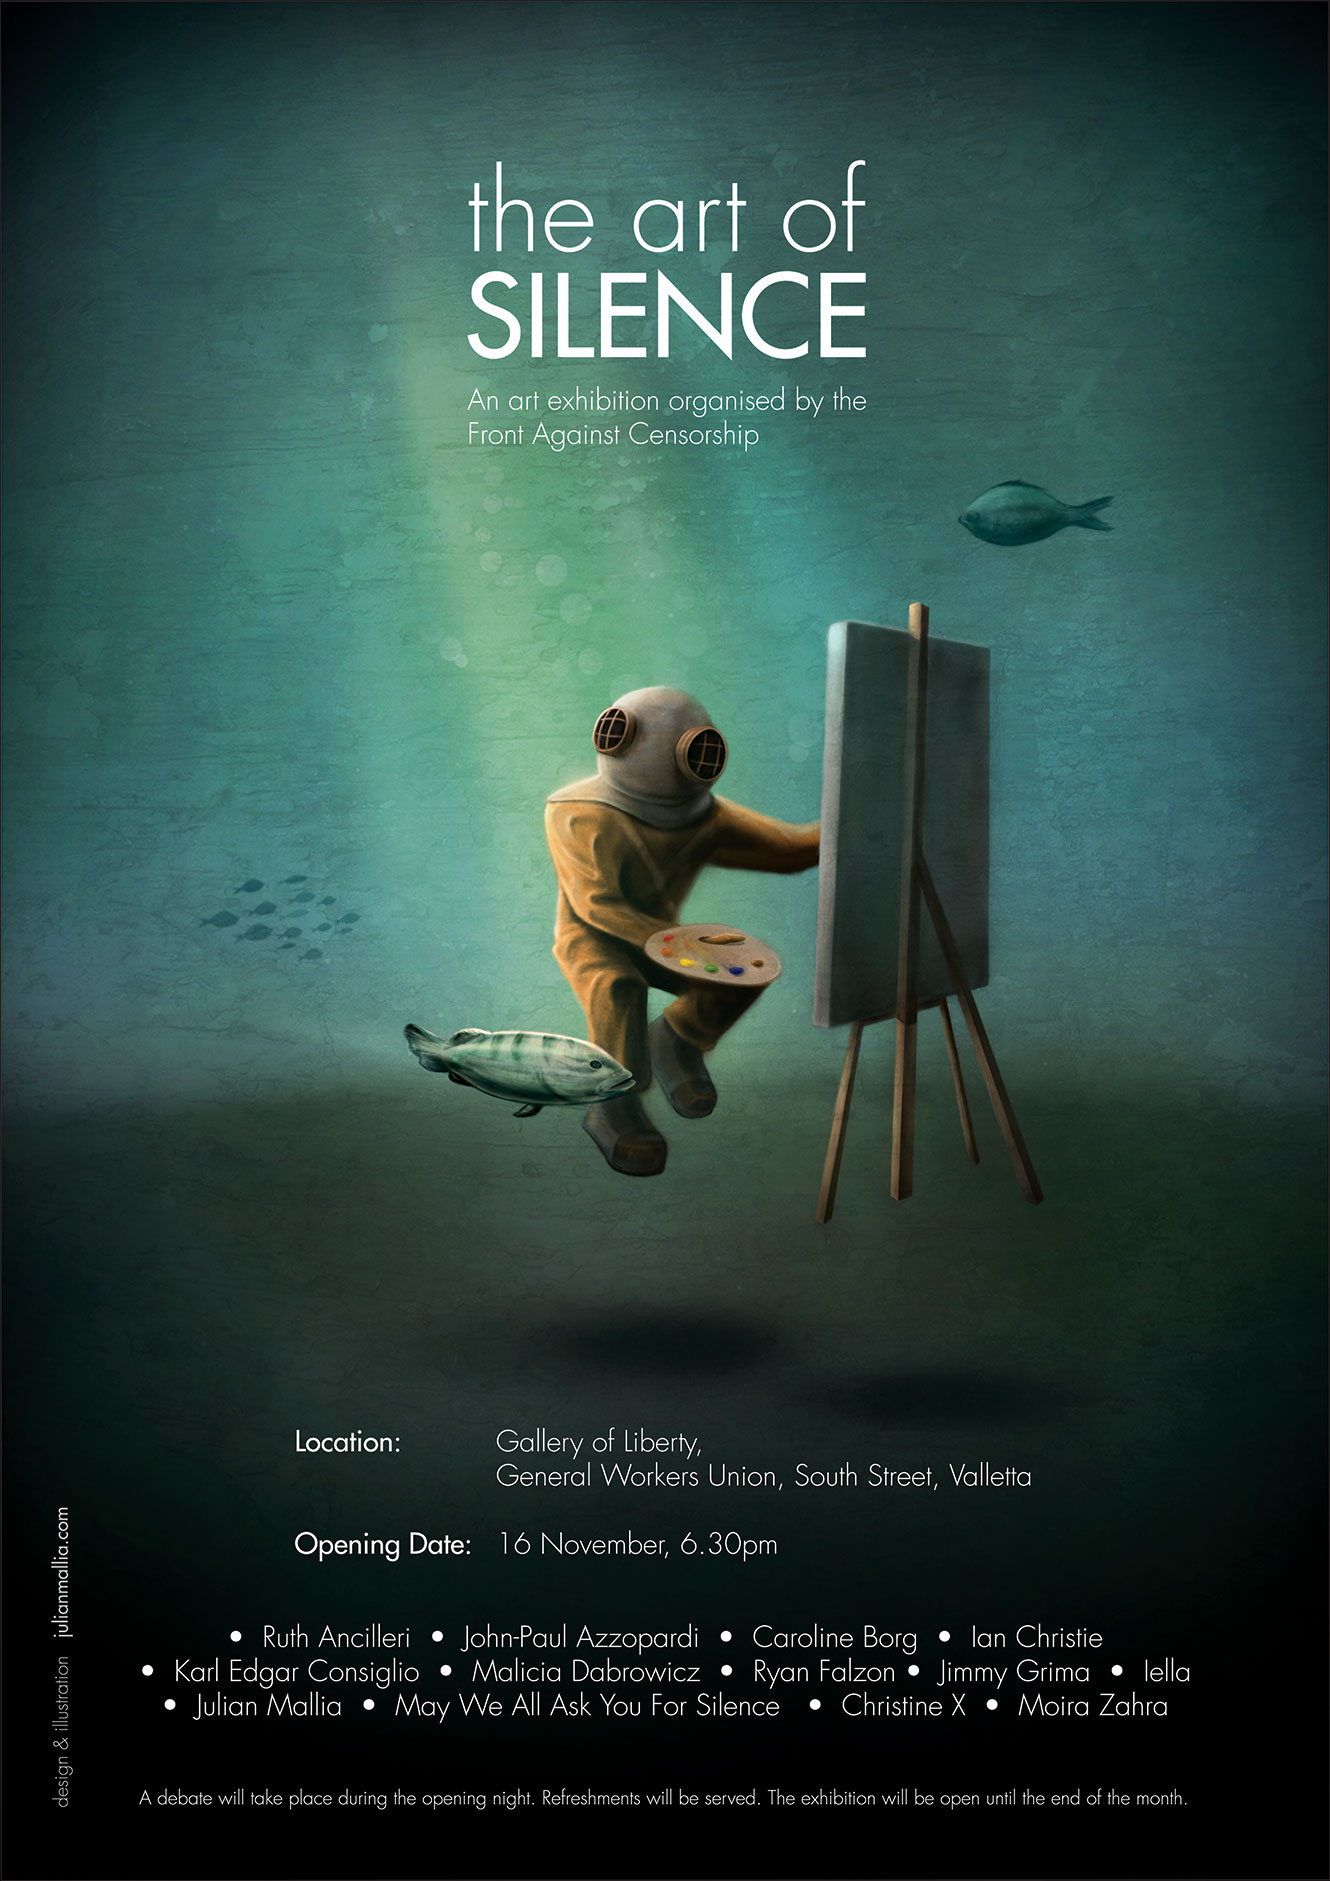 FKC---The-Art-of-Silence-Poster---High-Resolution-for-Print